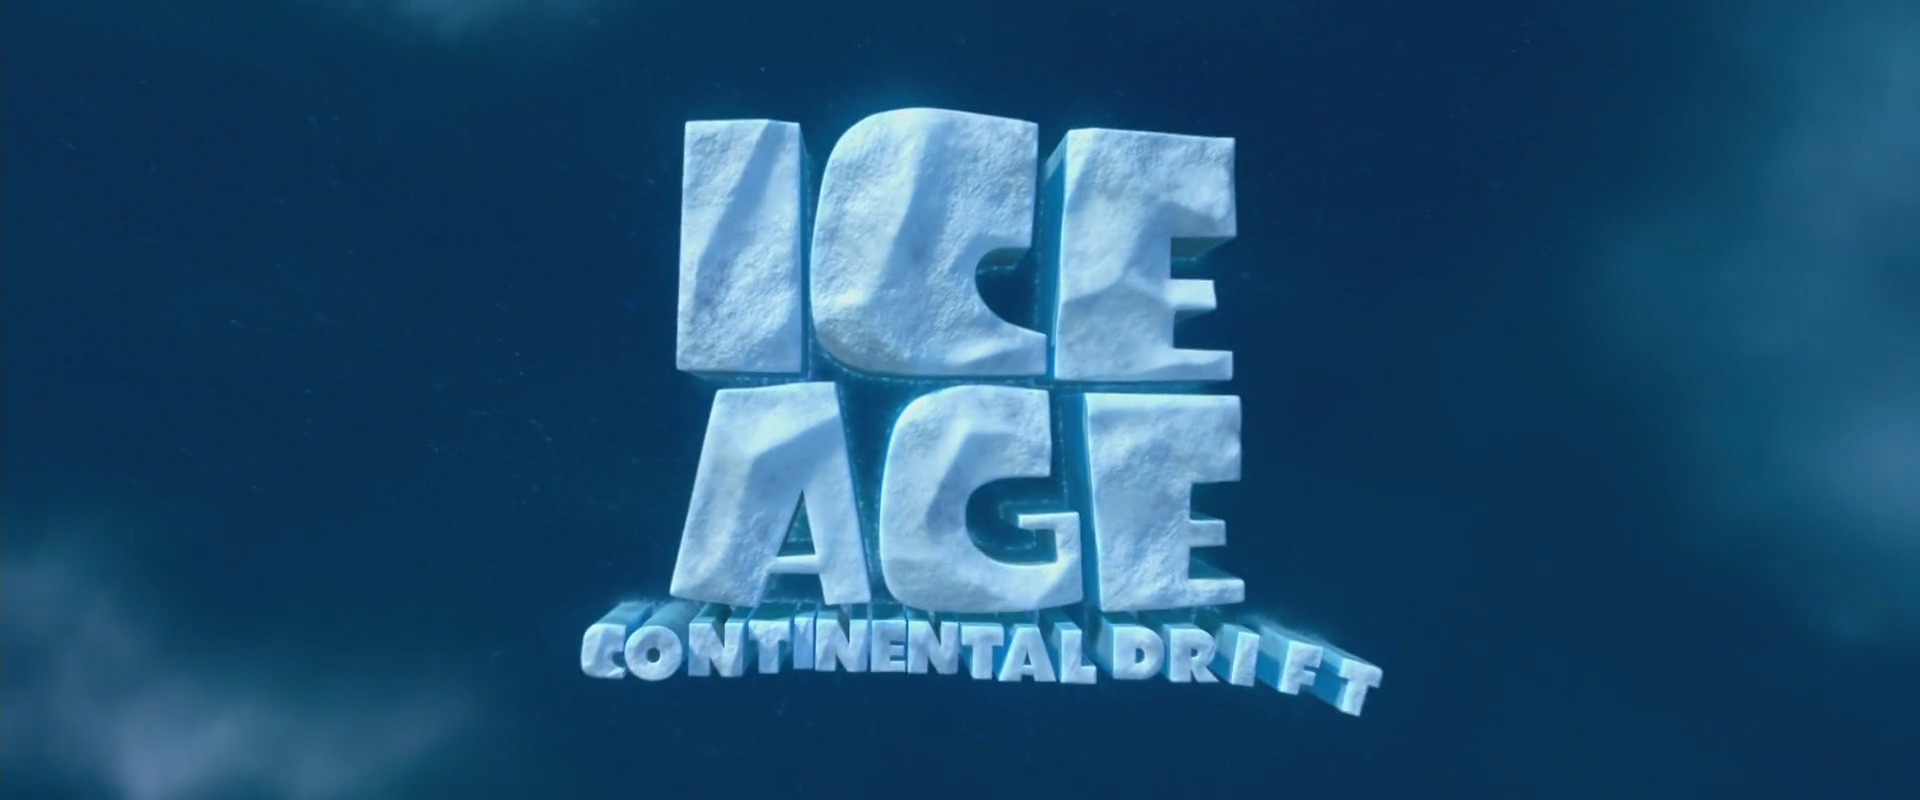 Ice Age: Continental Drift | Blue Sky Studios Wiki | FANDOM powered by Wikia